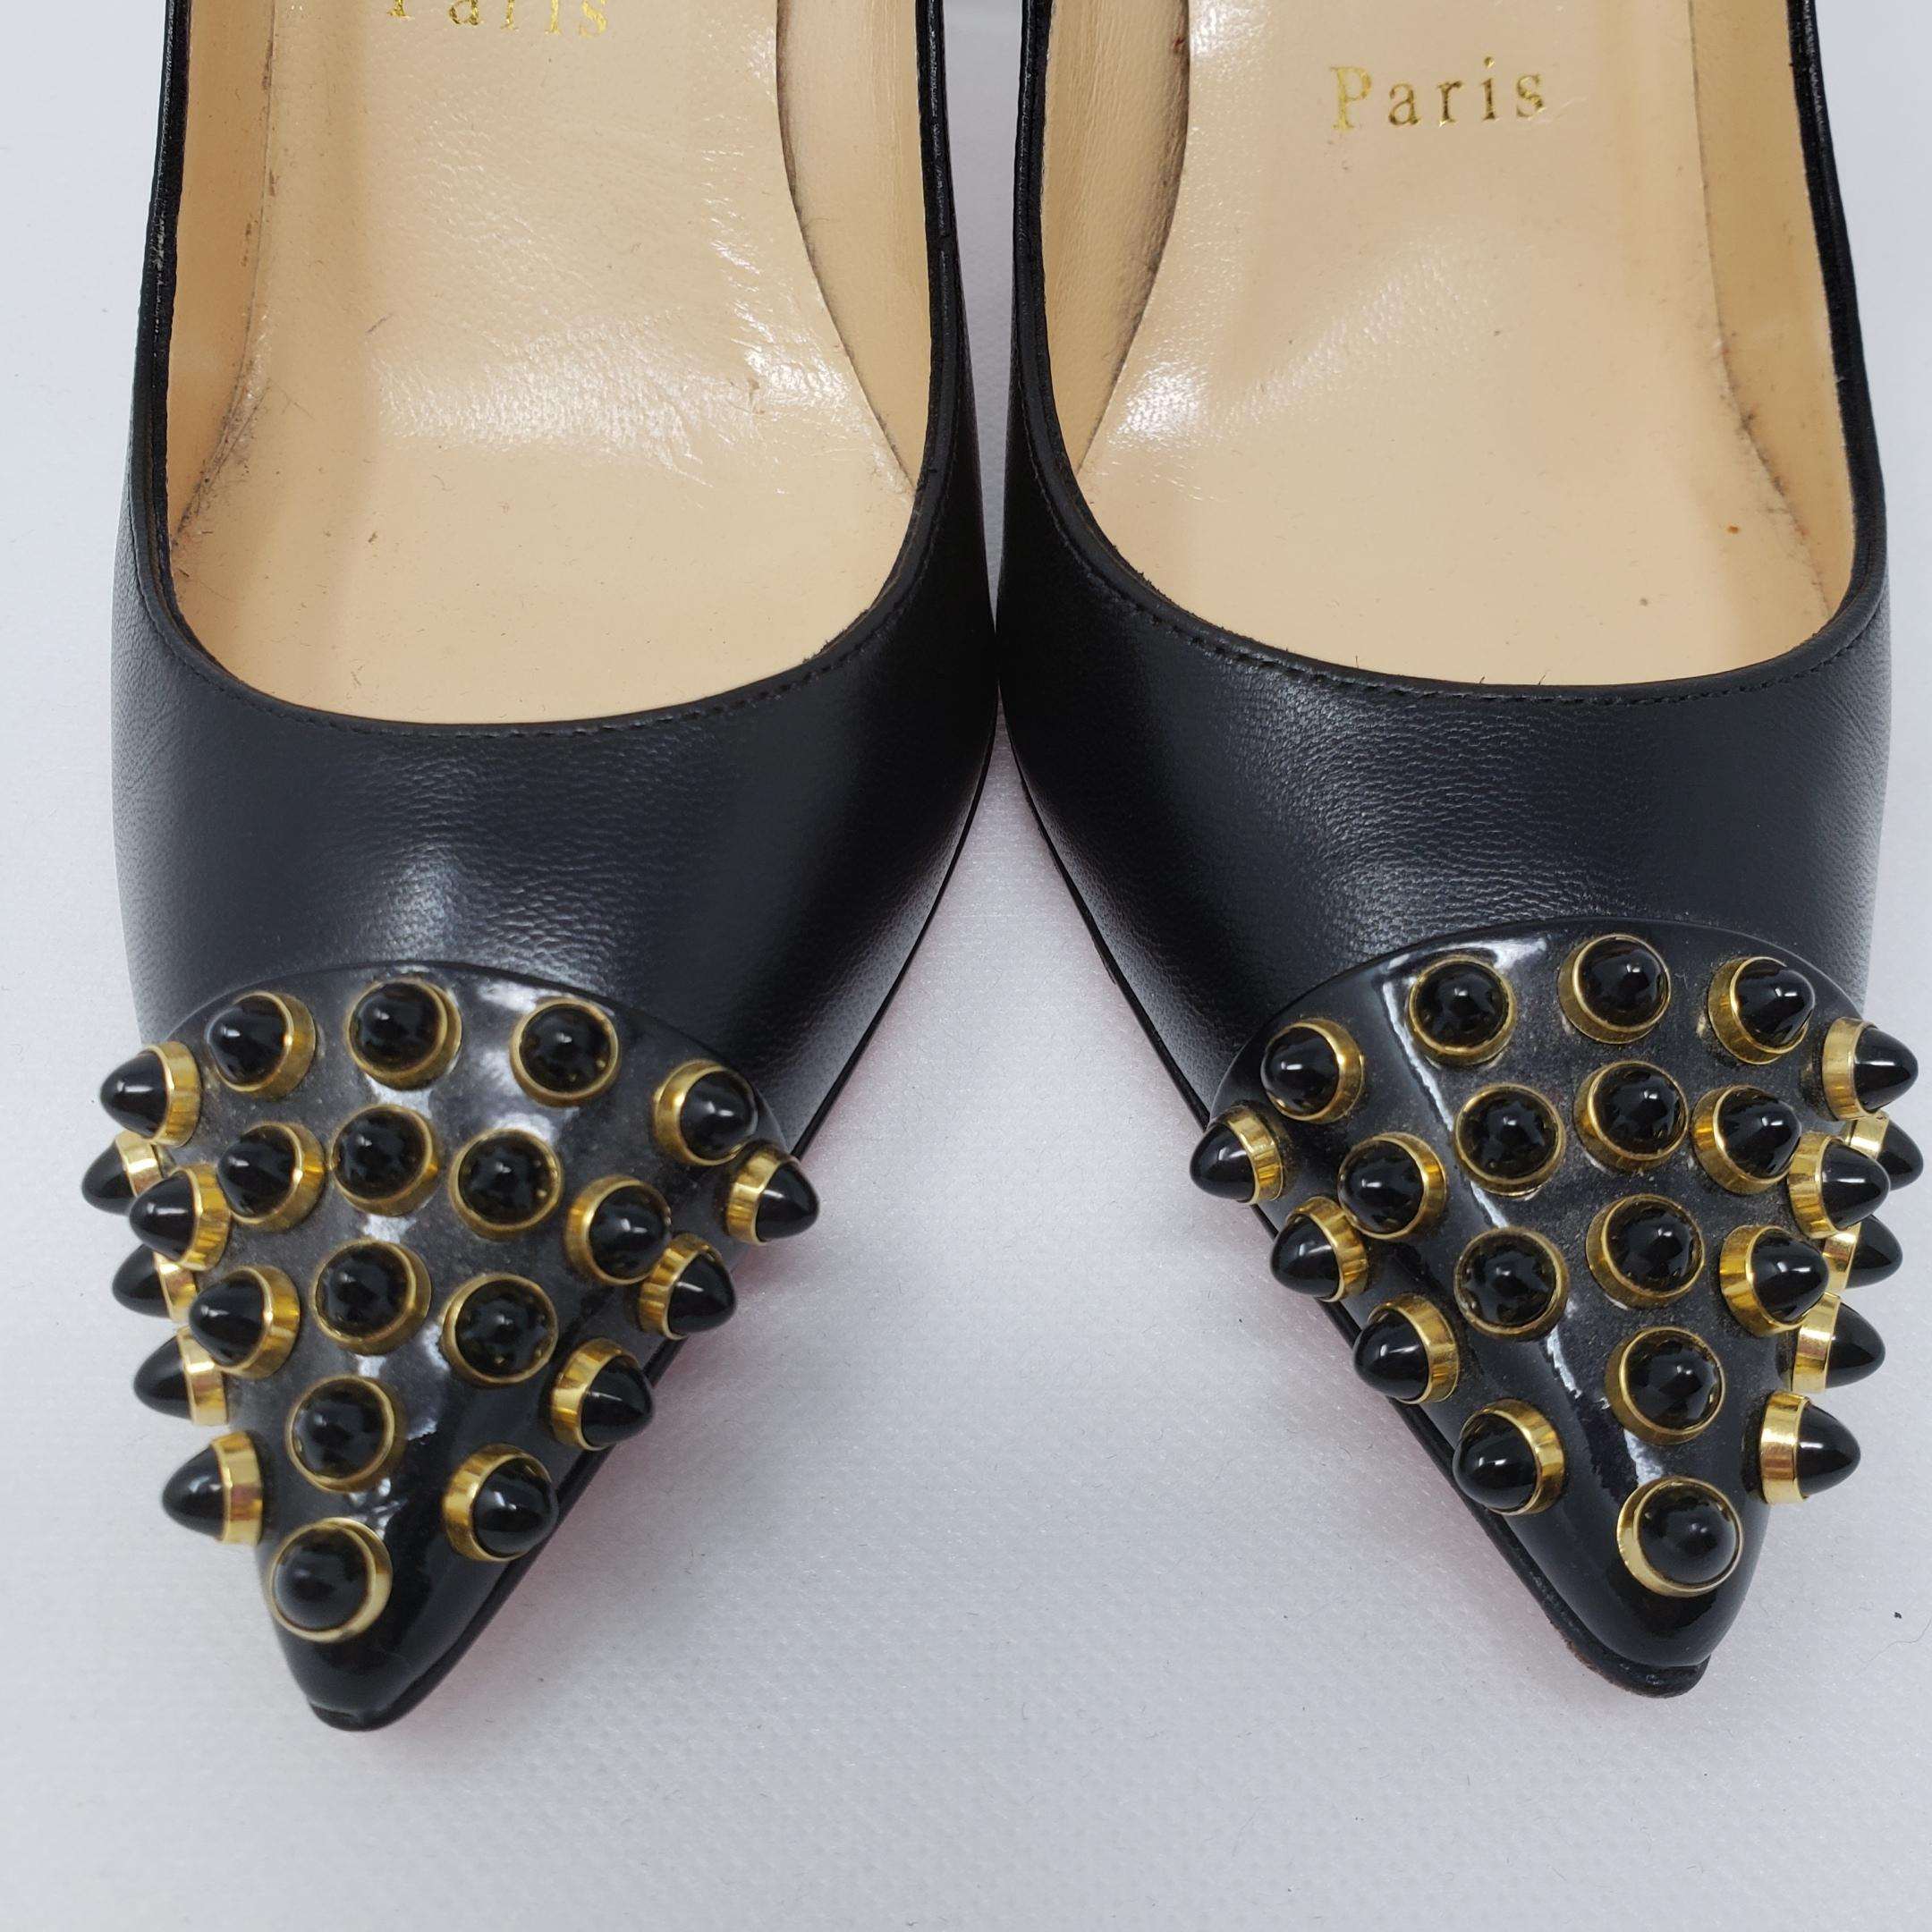 521fb31f6a00 ... Christian Louboutin Black Gold Leather Pointed-toe Pumps Size EU EU EU  35 (Approx ...